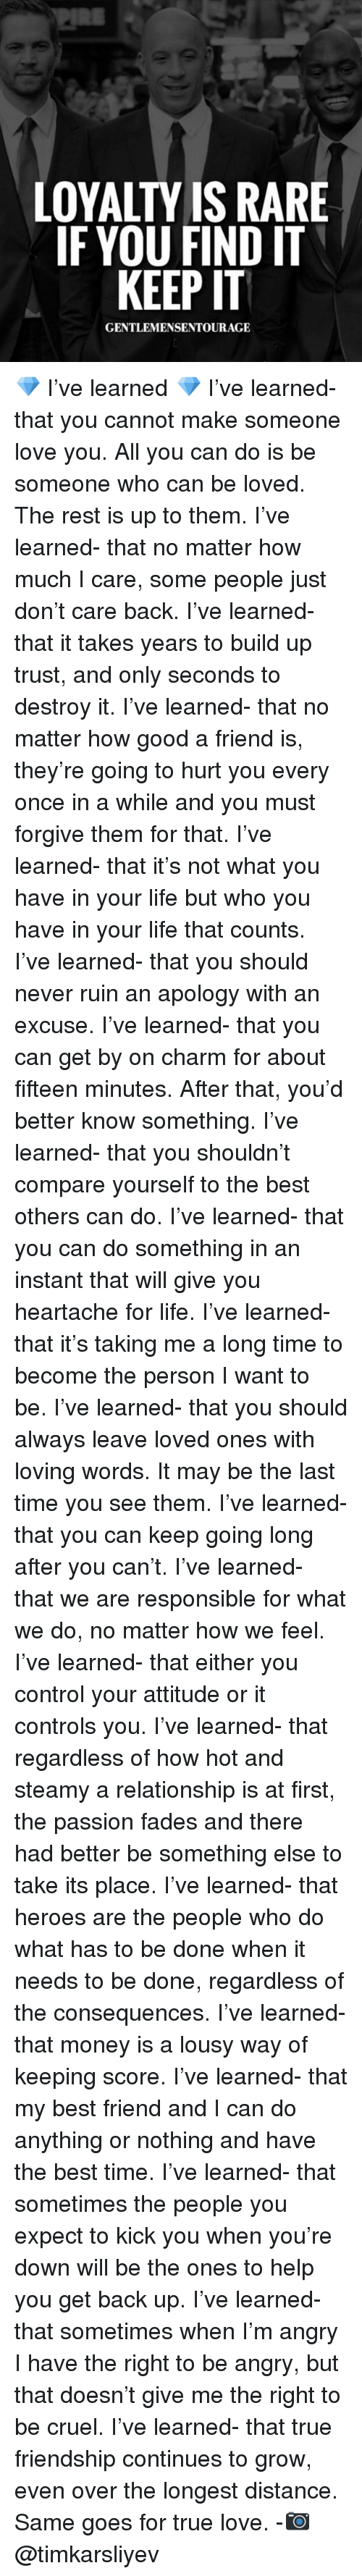 lousy: LOYALTY IS RARE  IF YOU FIND IT  KEEP IT  GENTLEMENSENTOURAGE 💎 I've learned 💎 I've learned- that you cannot make someone love you. All you can do is be someone who can be loved. The rest is up to them. I've learned- that no matter how much I care, some people just don't care back. I've learned- that it takes years to build up trust, and only seconds to destroy it. I've learned- that no matter how good a friend is, they're going to hurt you every once in a while and you must forgive them for that. I've learned- that it's not what you have in your life but who you have in your life that counts. I've learned- that you should never ruin an apology with an excuse. I've learned- that you can get by on charm for about fifteen minutes. After that, you'd better know something. I've learned- that you shouldn't compare yourself to the best others can do. I've learned- that you can do something in an instant that will give you heartache for life. I've learned- that it's taking me a long time to become the person I want to be. I've learned- that you should always leave loved ones with loving words. It may be the last time you see them. I've learned- that you can keep going long after you can't. I've learned- that we are responsible for what we do, no matter how we feel. I've learned- that either you control your attitude or it controls you. I've learned- that regardless of how hot and steamy a relationship is at first, the passion fades and there had better be something else to take its place. I've learned- that heroes are the people who do what has to be done when it needs to be done, regardless of the consequences. I've learned- that money is a lousy way of keeping score. I've learned- that my best friend and I can do anything or nothing and have the best time. I've learned- that sometimes the people you expect to kick you when you're down will be the ones to help you get back up. I've learned- that sometimes when I'm angry I have the right to be angry, but that doesn'